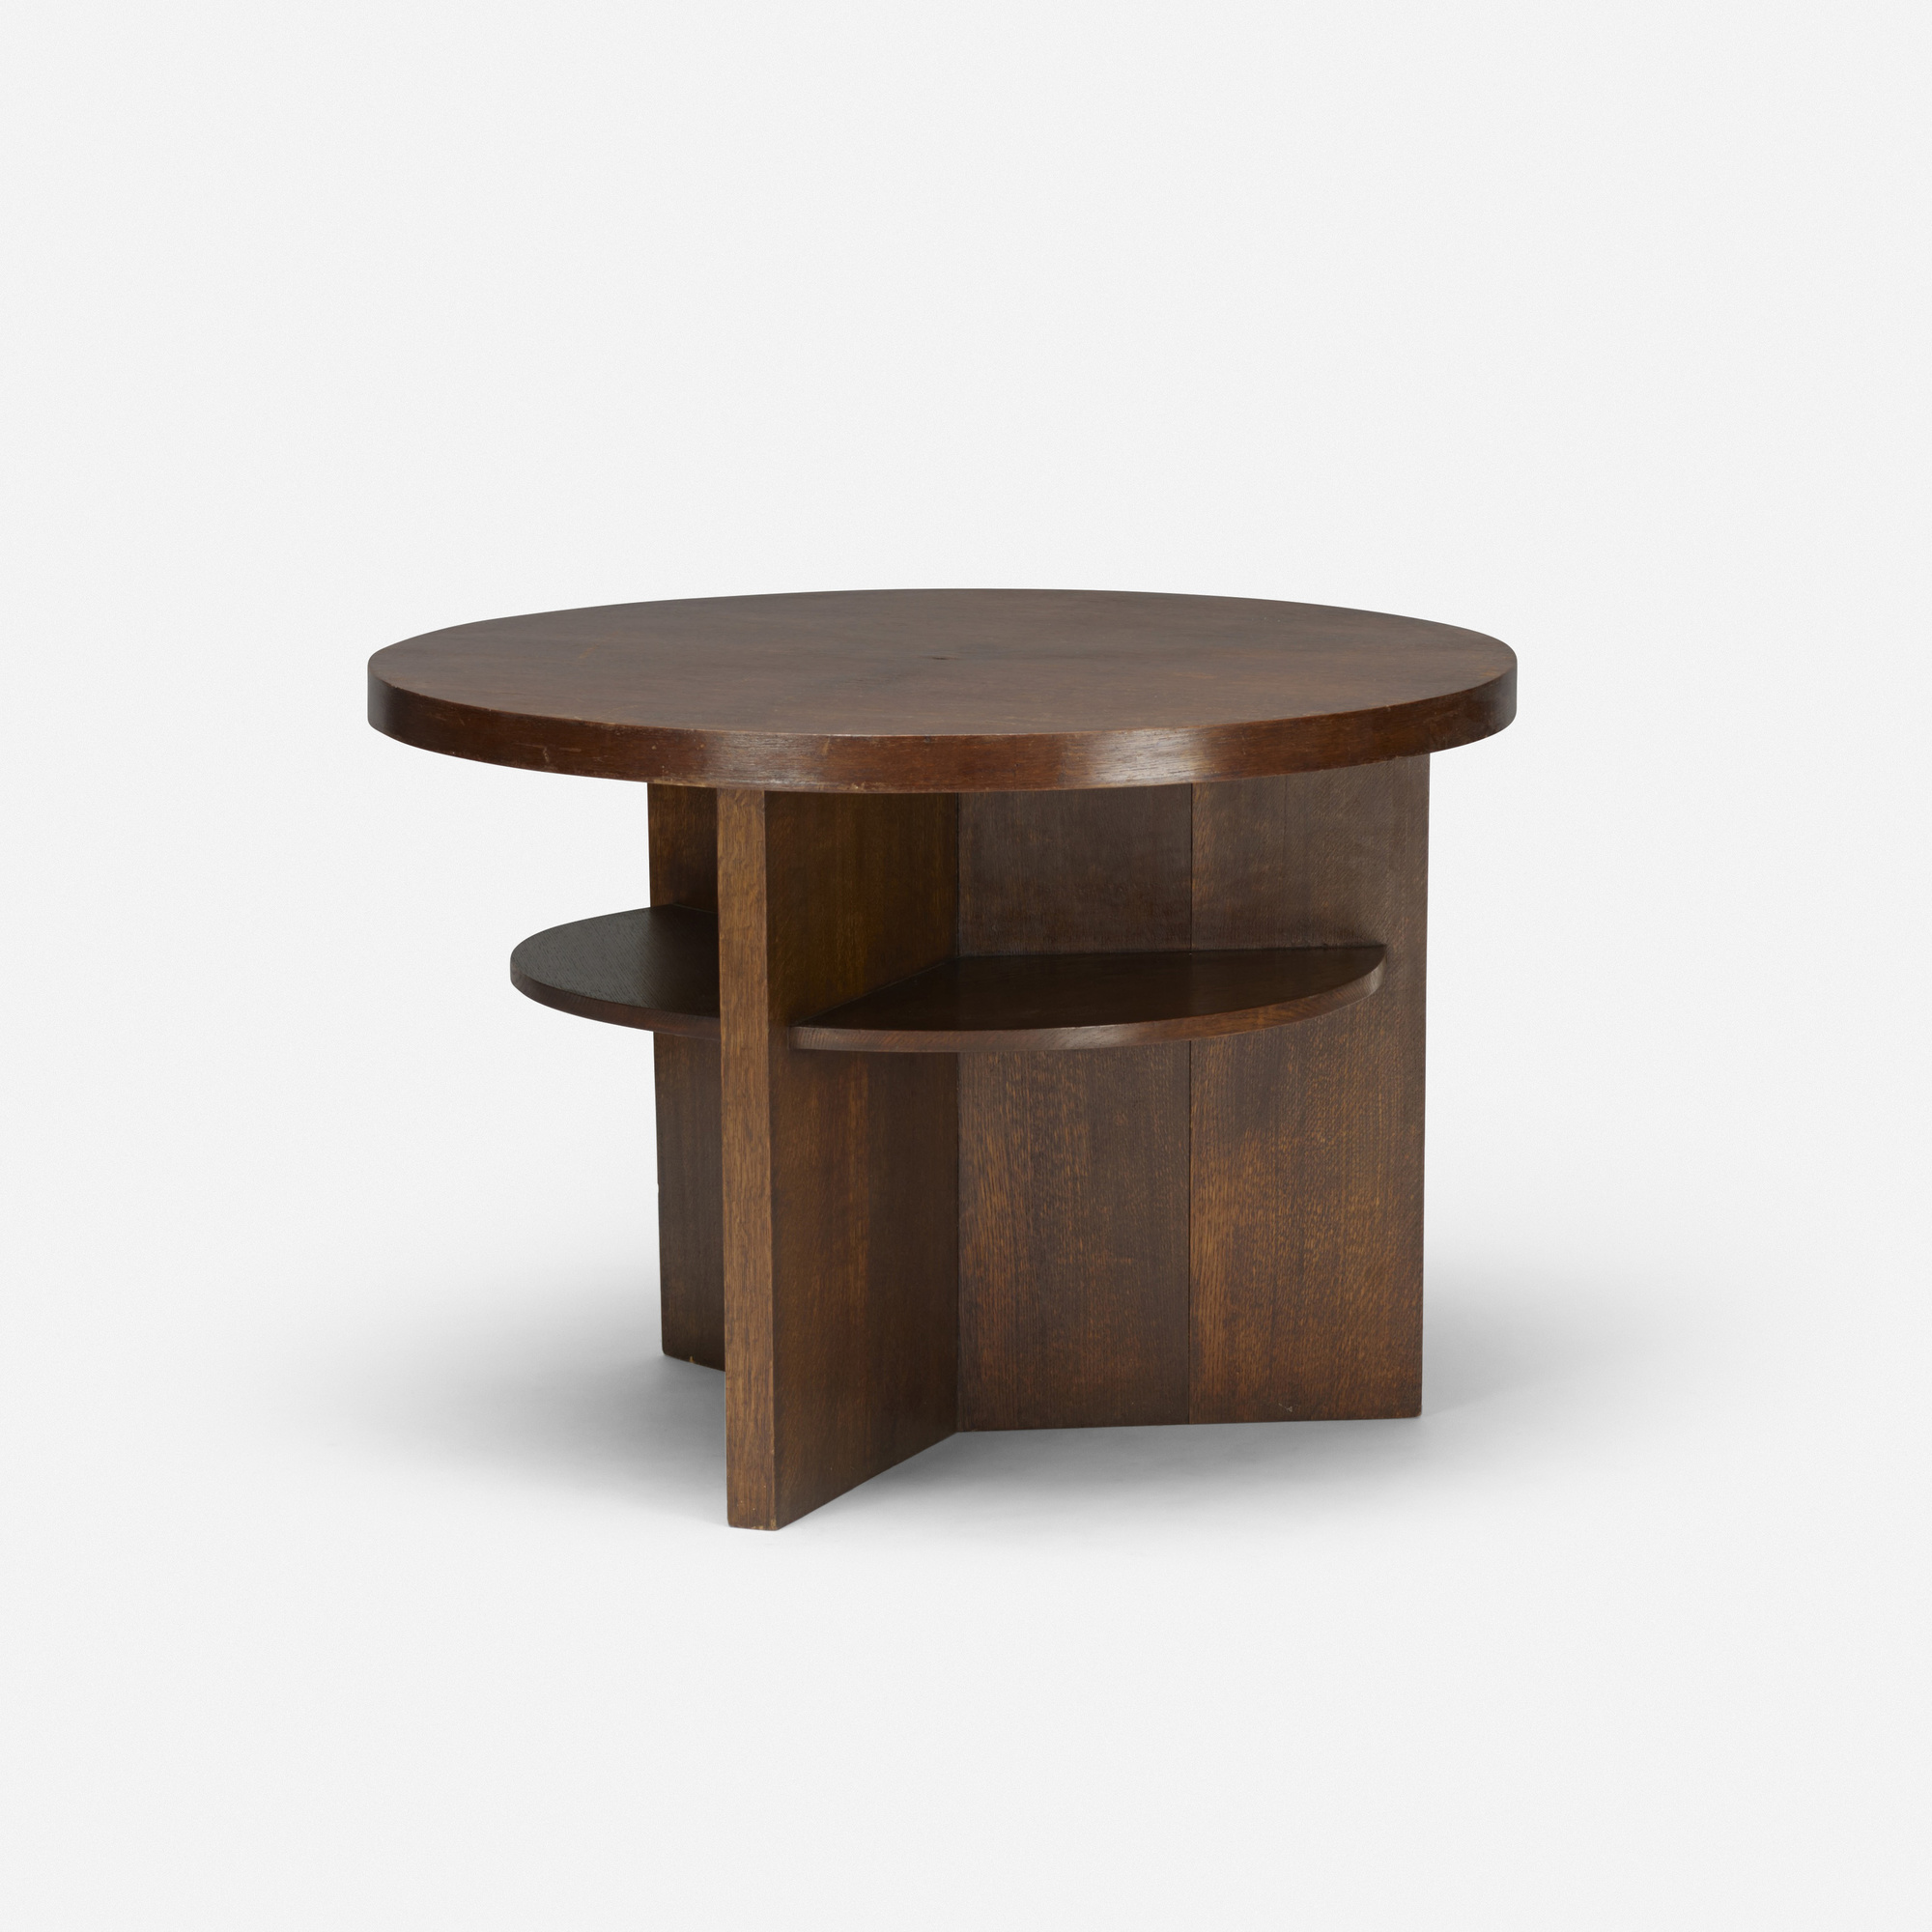 133: Art Deco / occasional table (1 of 3)